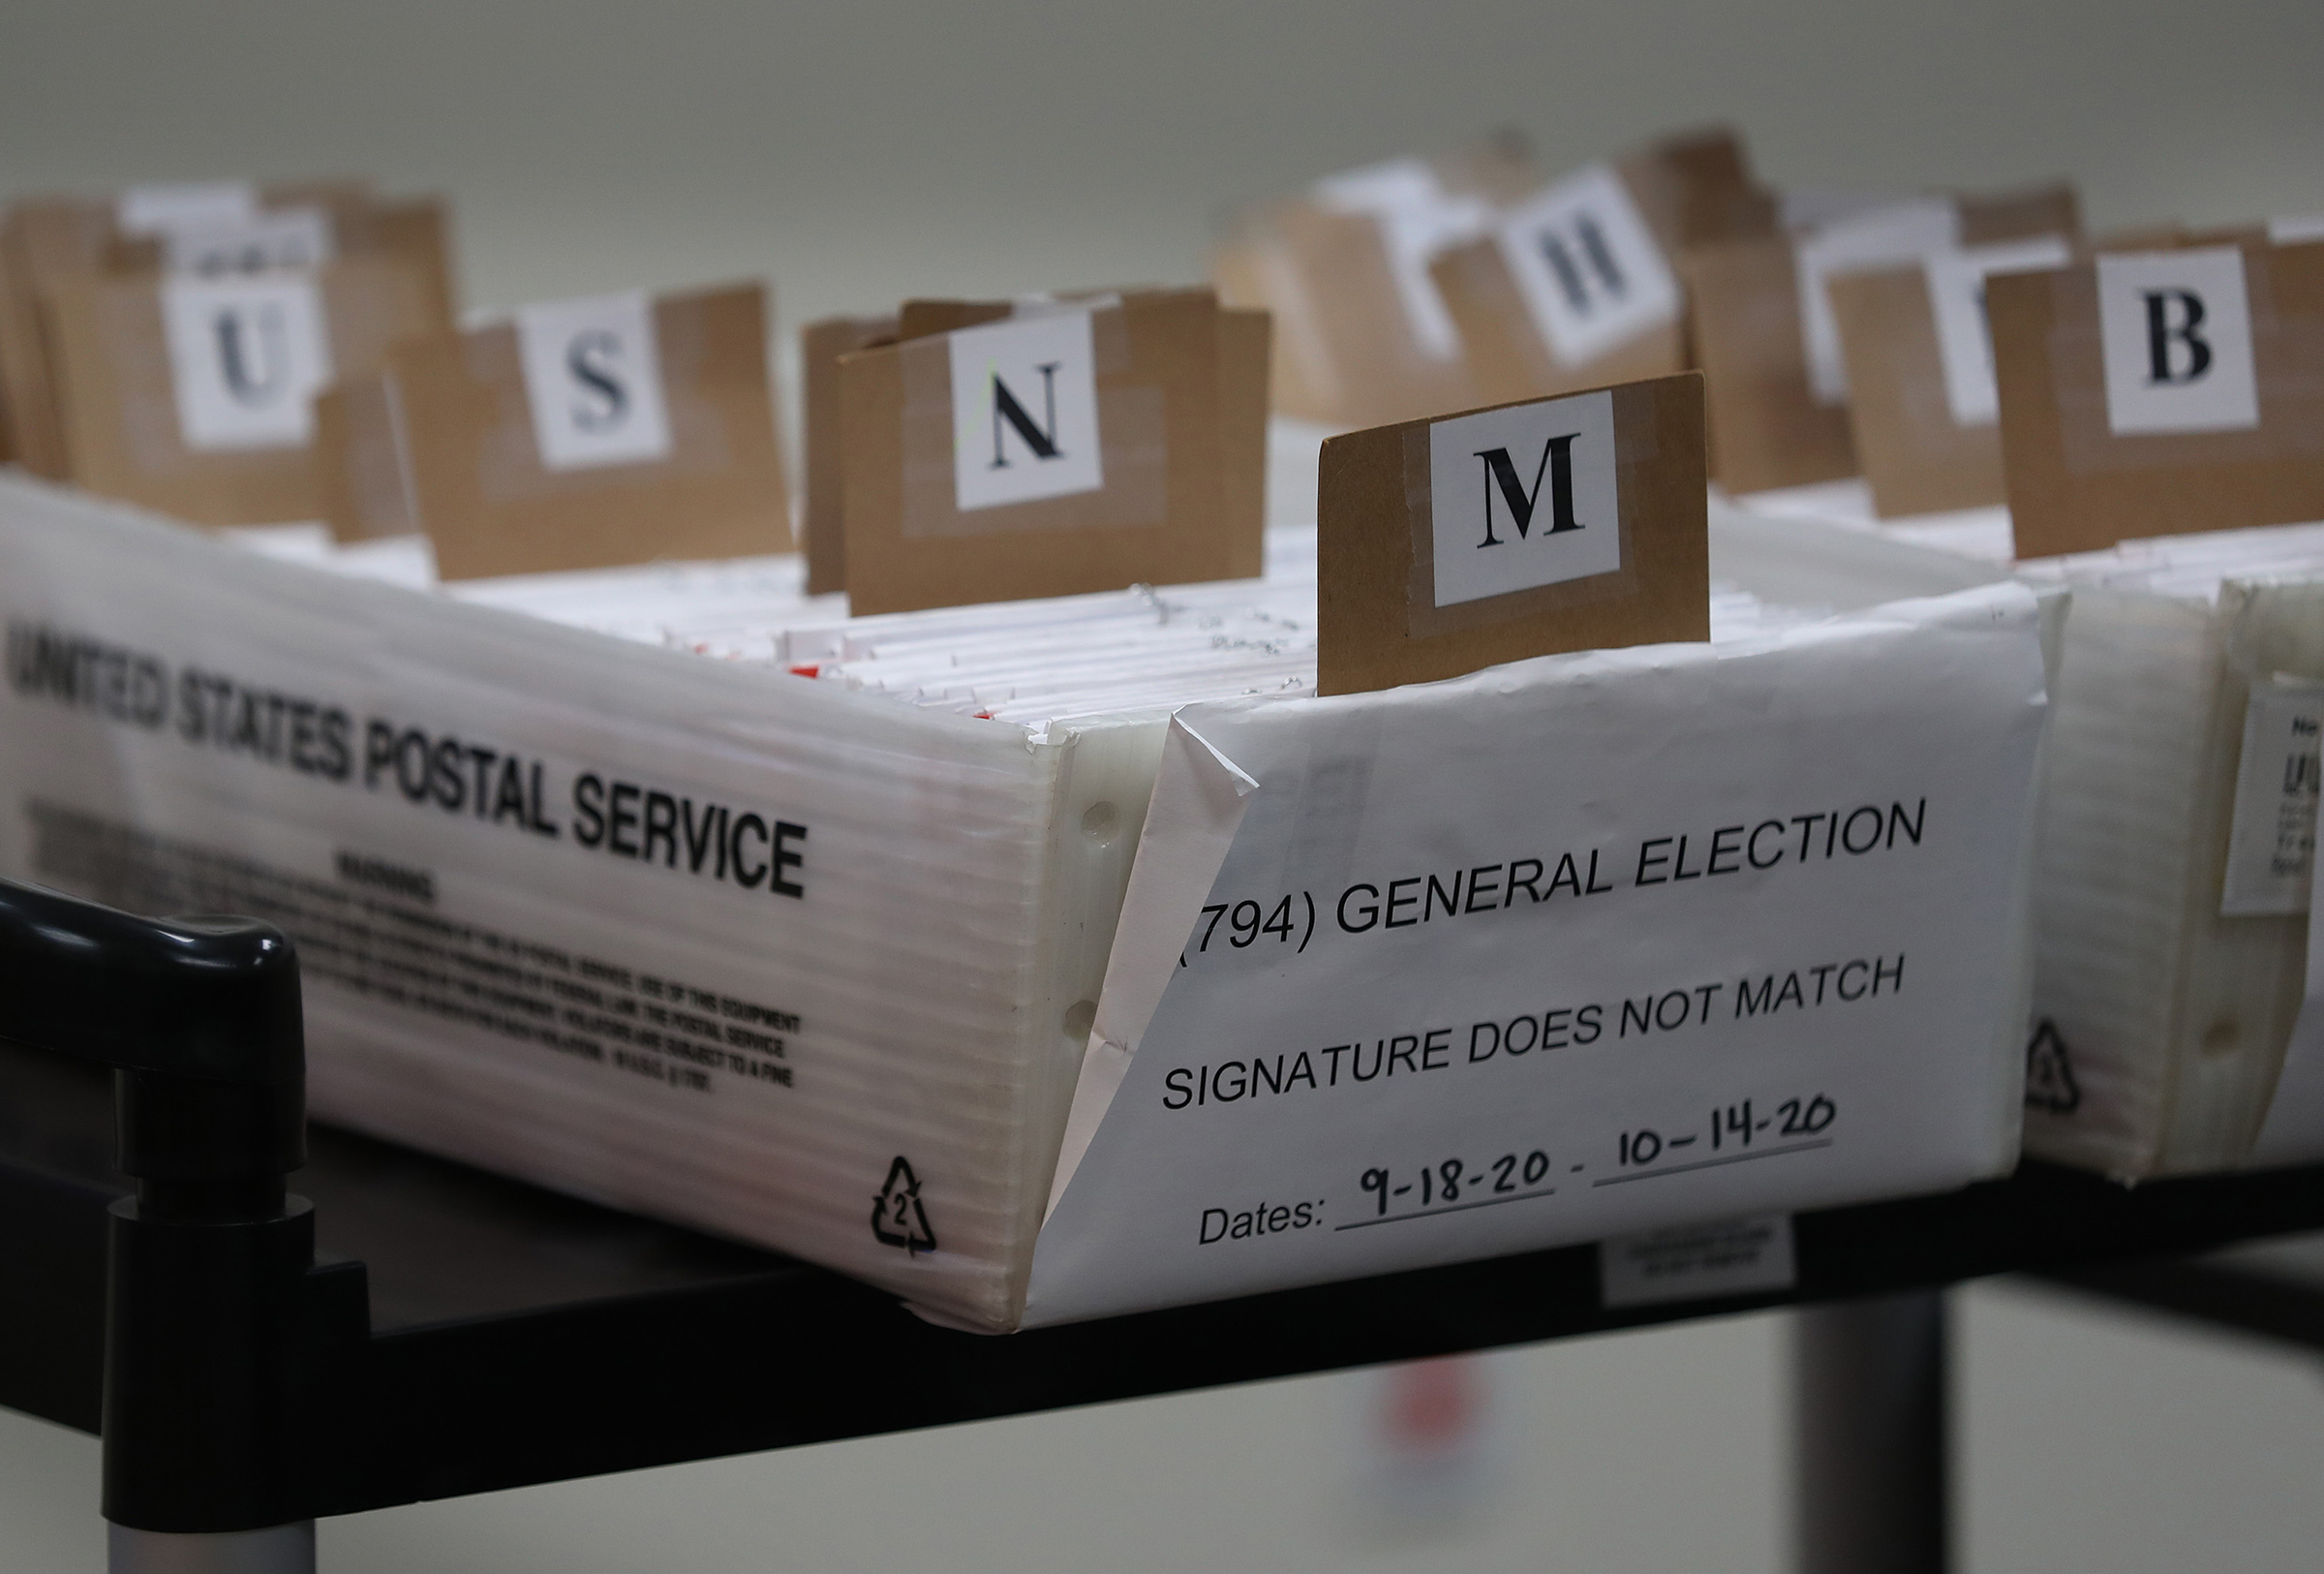 Boxes for Vote-by-Mail ballots that need to be reviewed due to signature discrepancies are seen ahead of the Nov. 3 general election at the Miami-Dade County Elections Department on Oct. 15 in Doral, Fla.